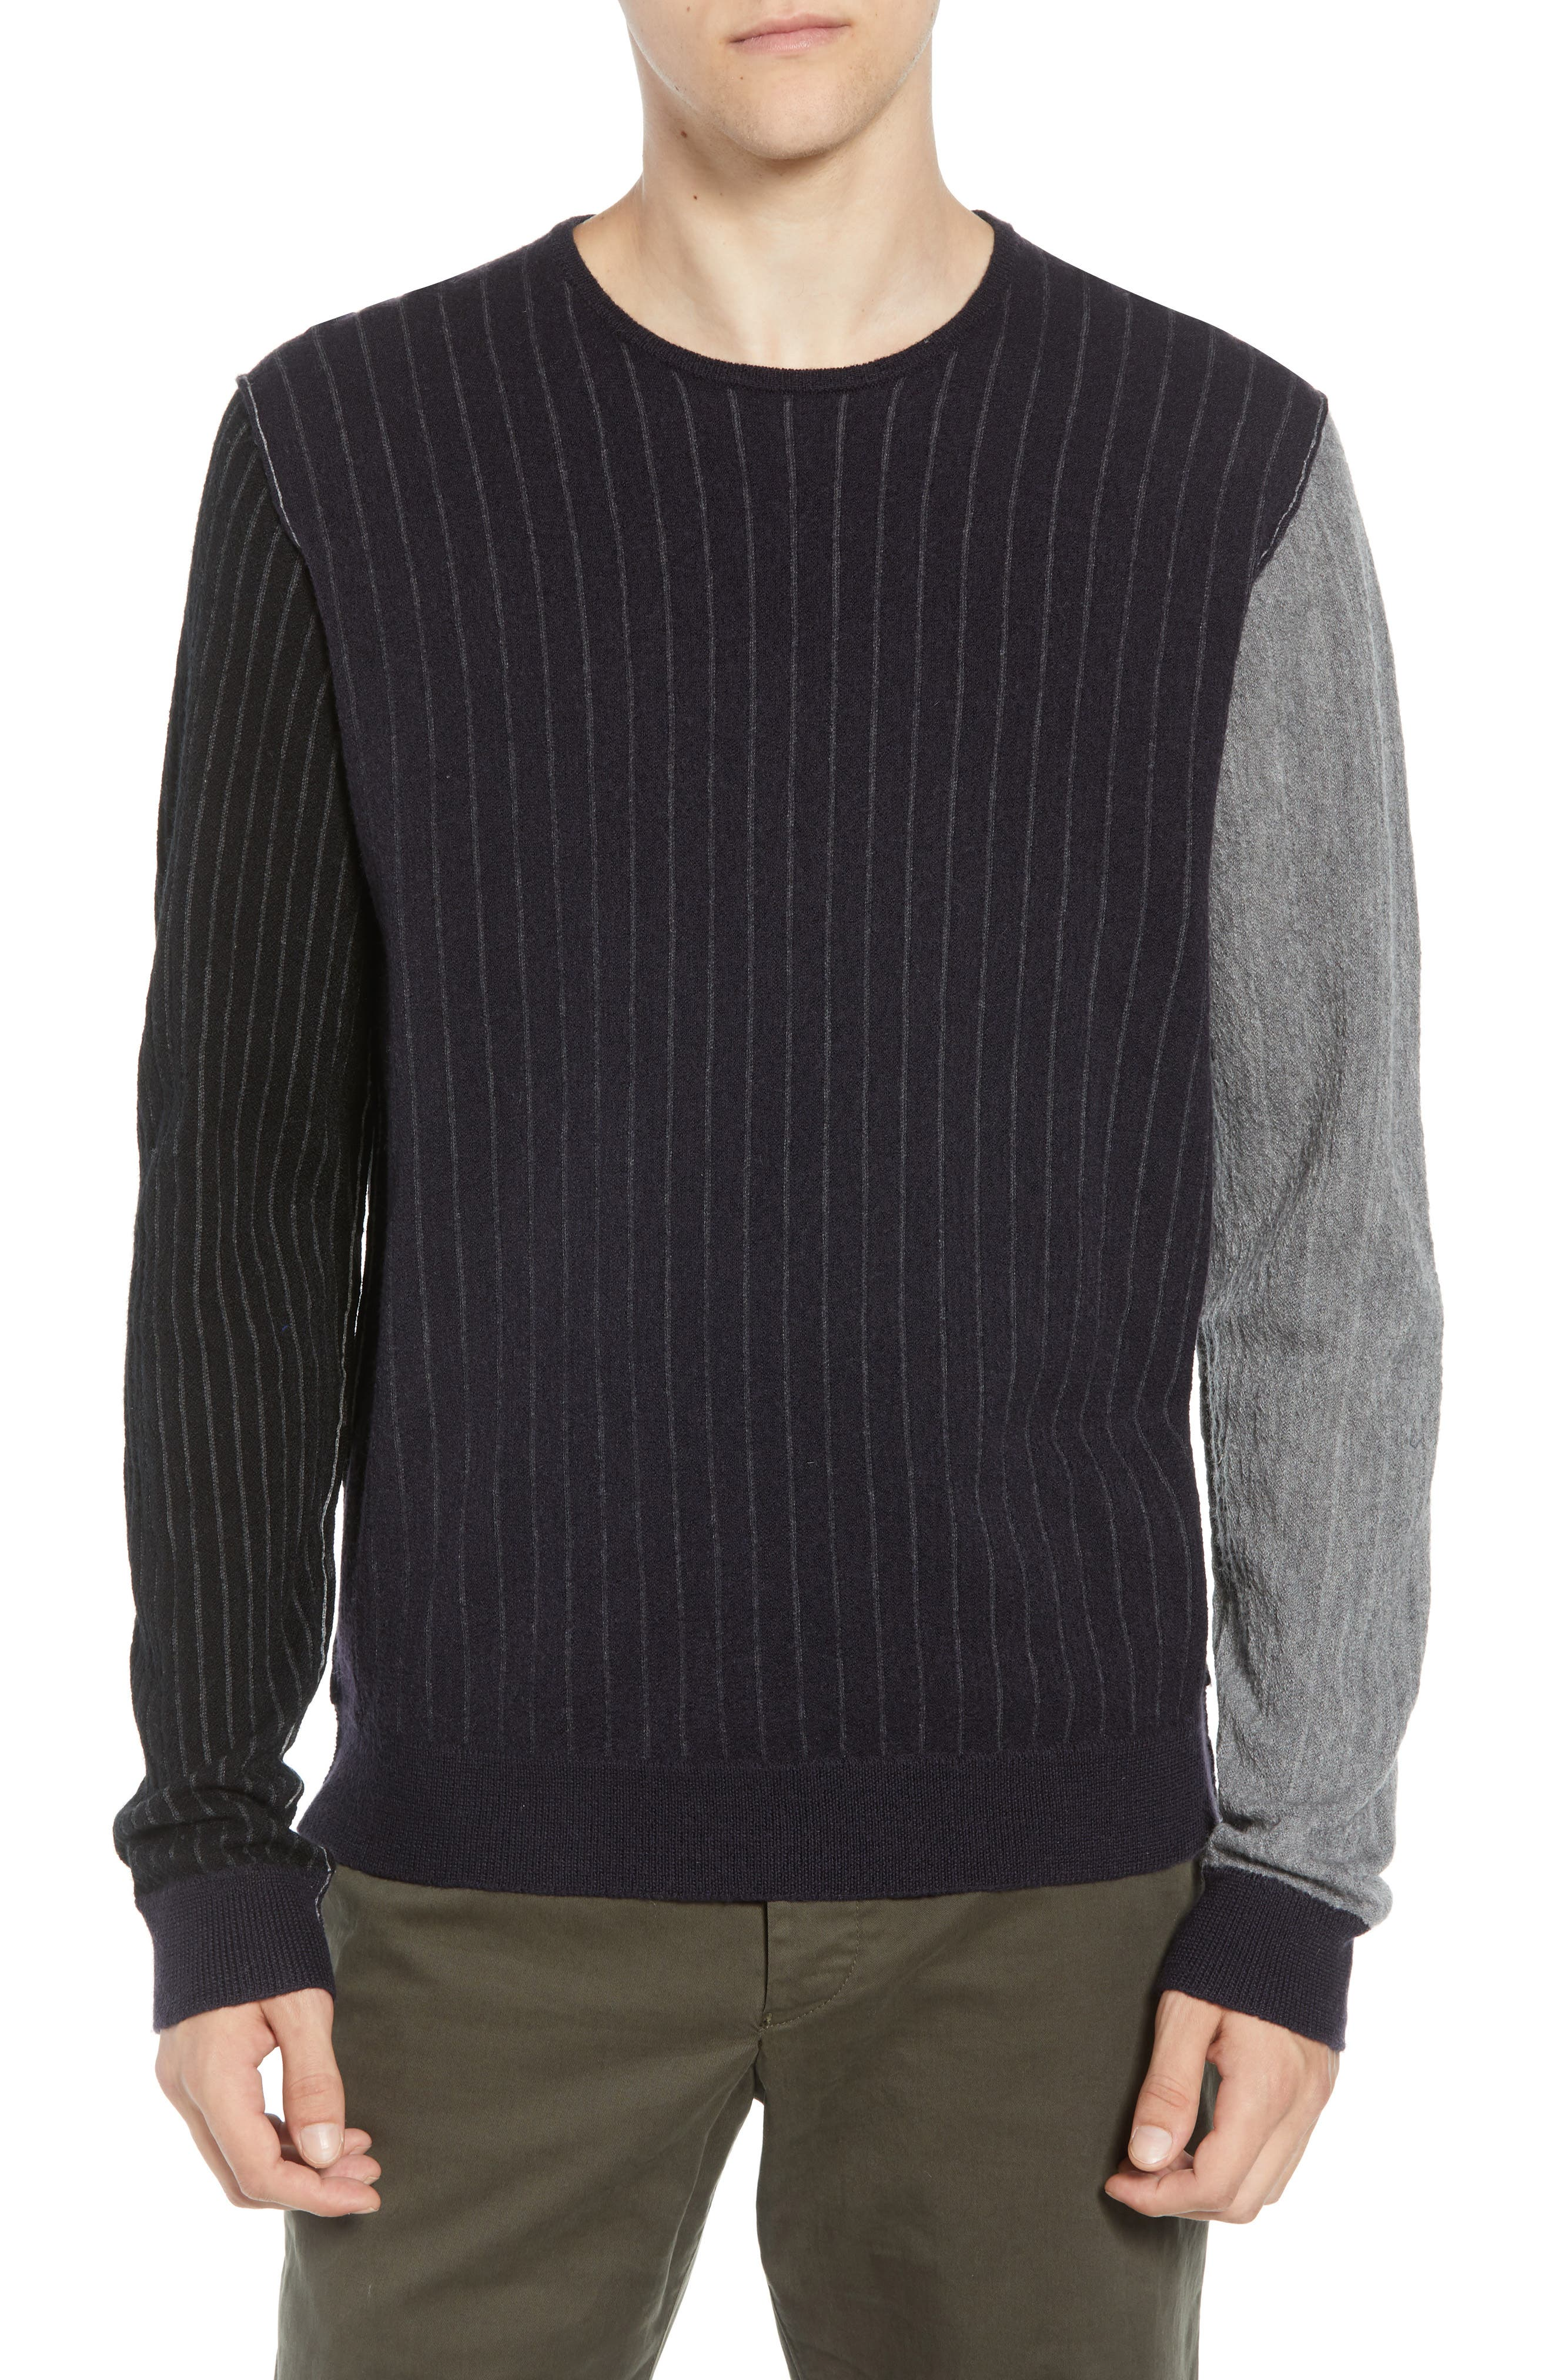 French Connection Boiled Wool Blend Crewneck Sweater, Black